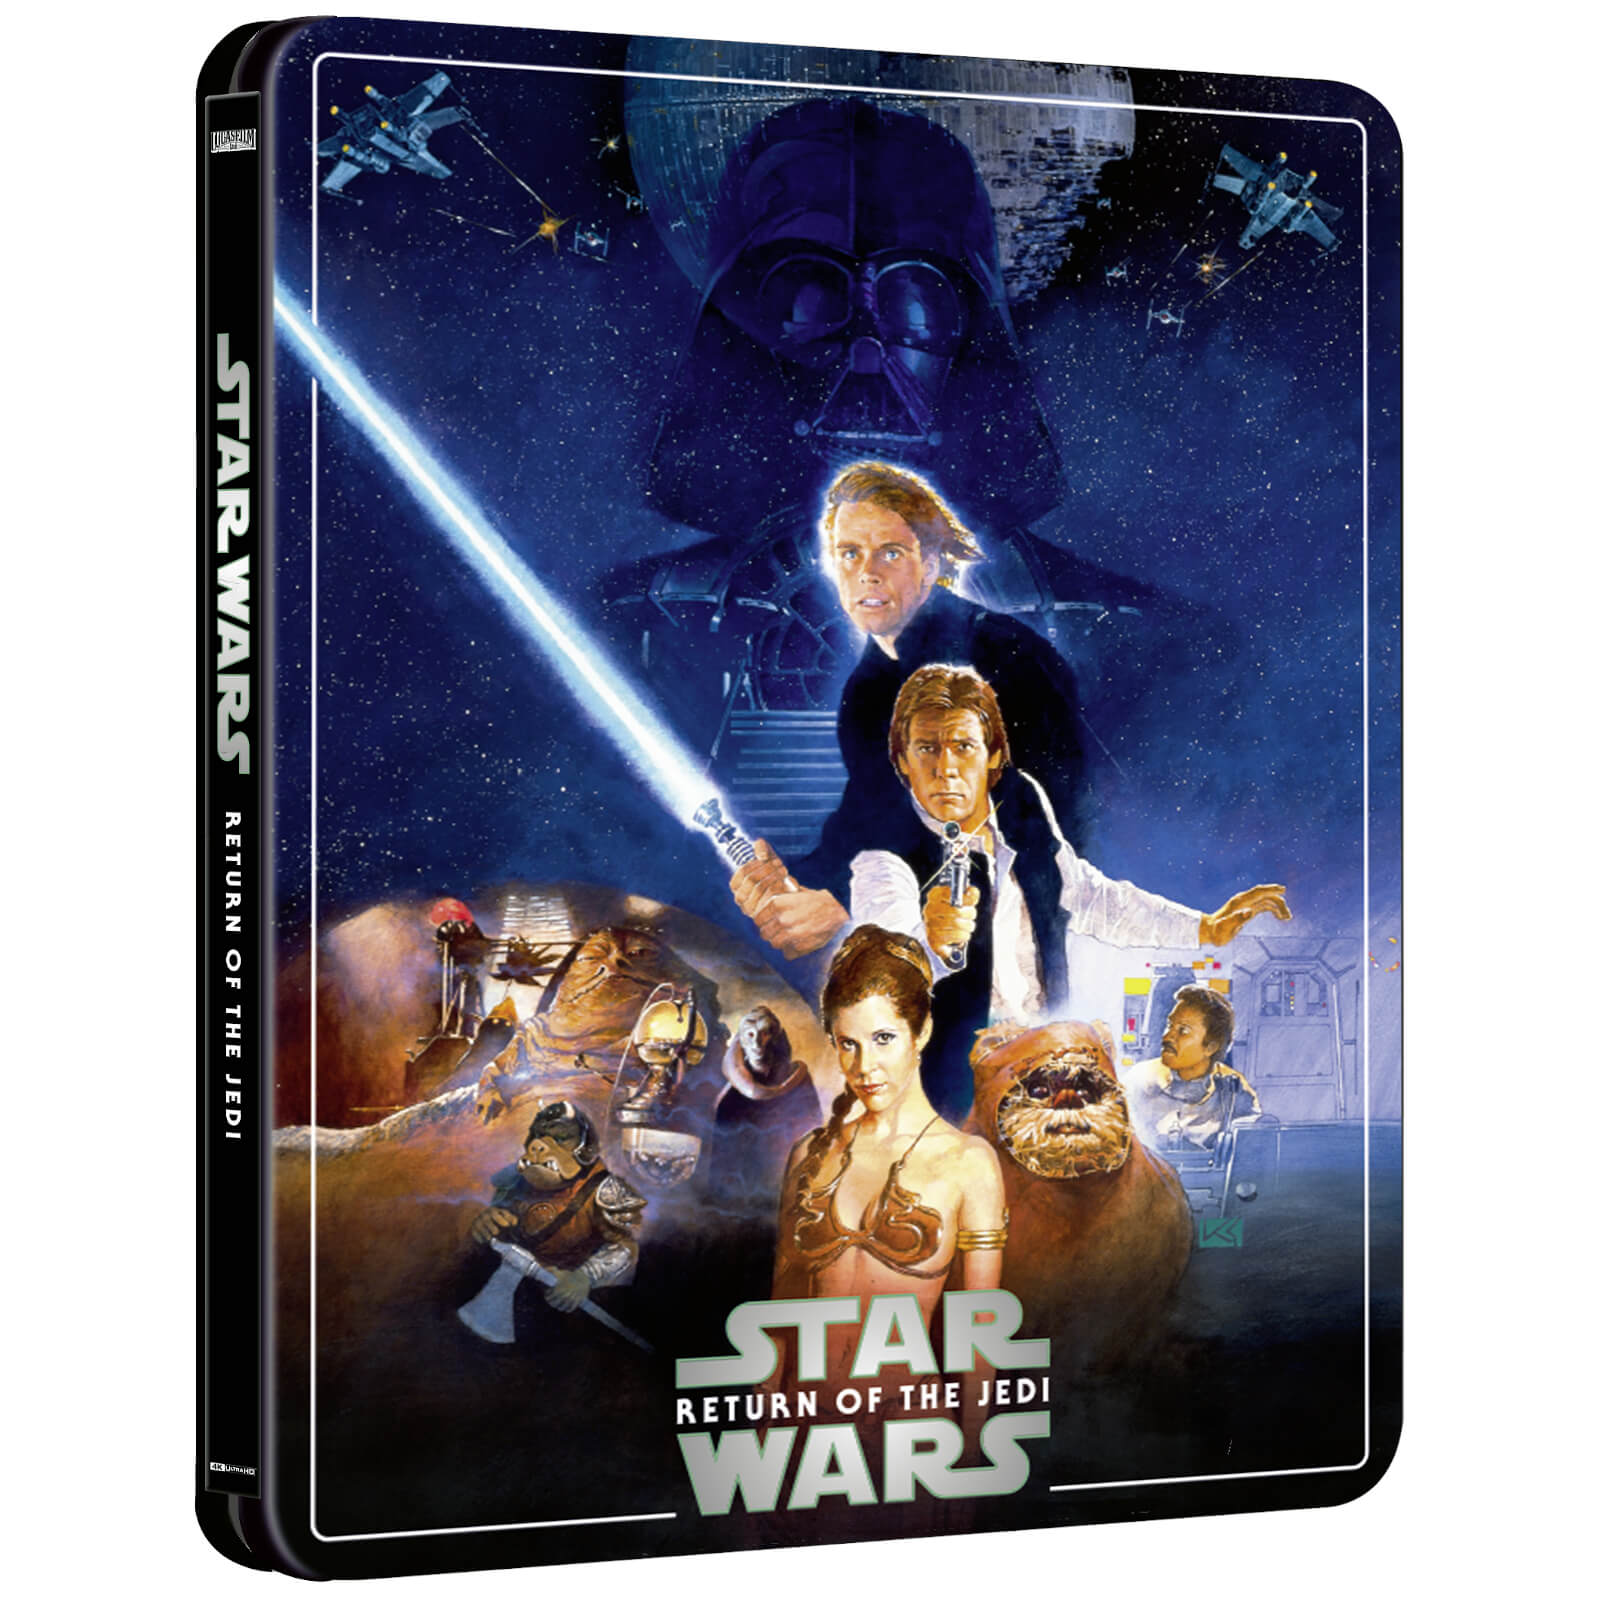 Star Wars: Return of the Jedi (Zavvi Steelbook)